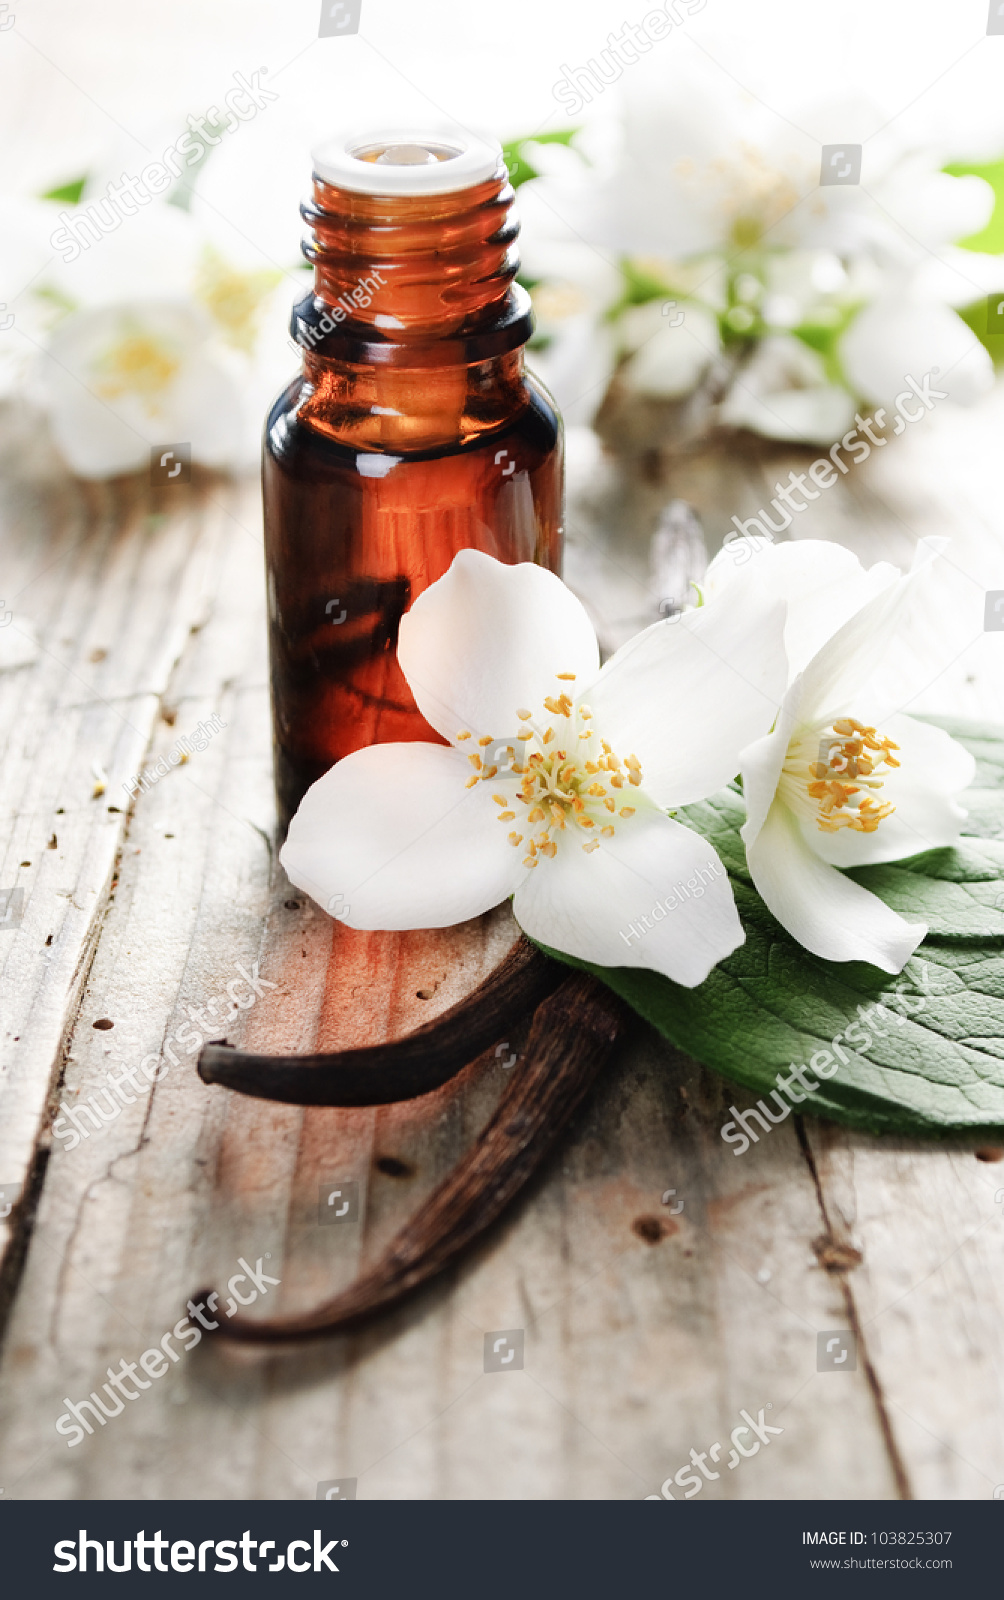 how to make essential oil from jasmine flower